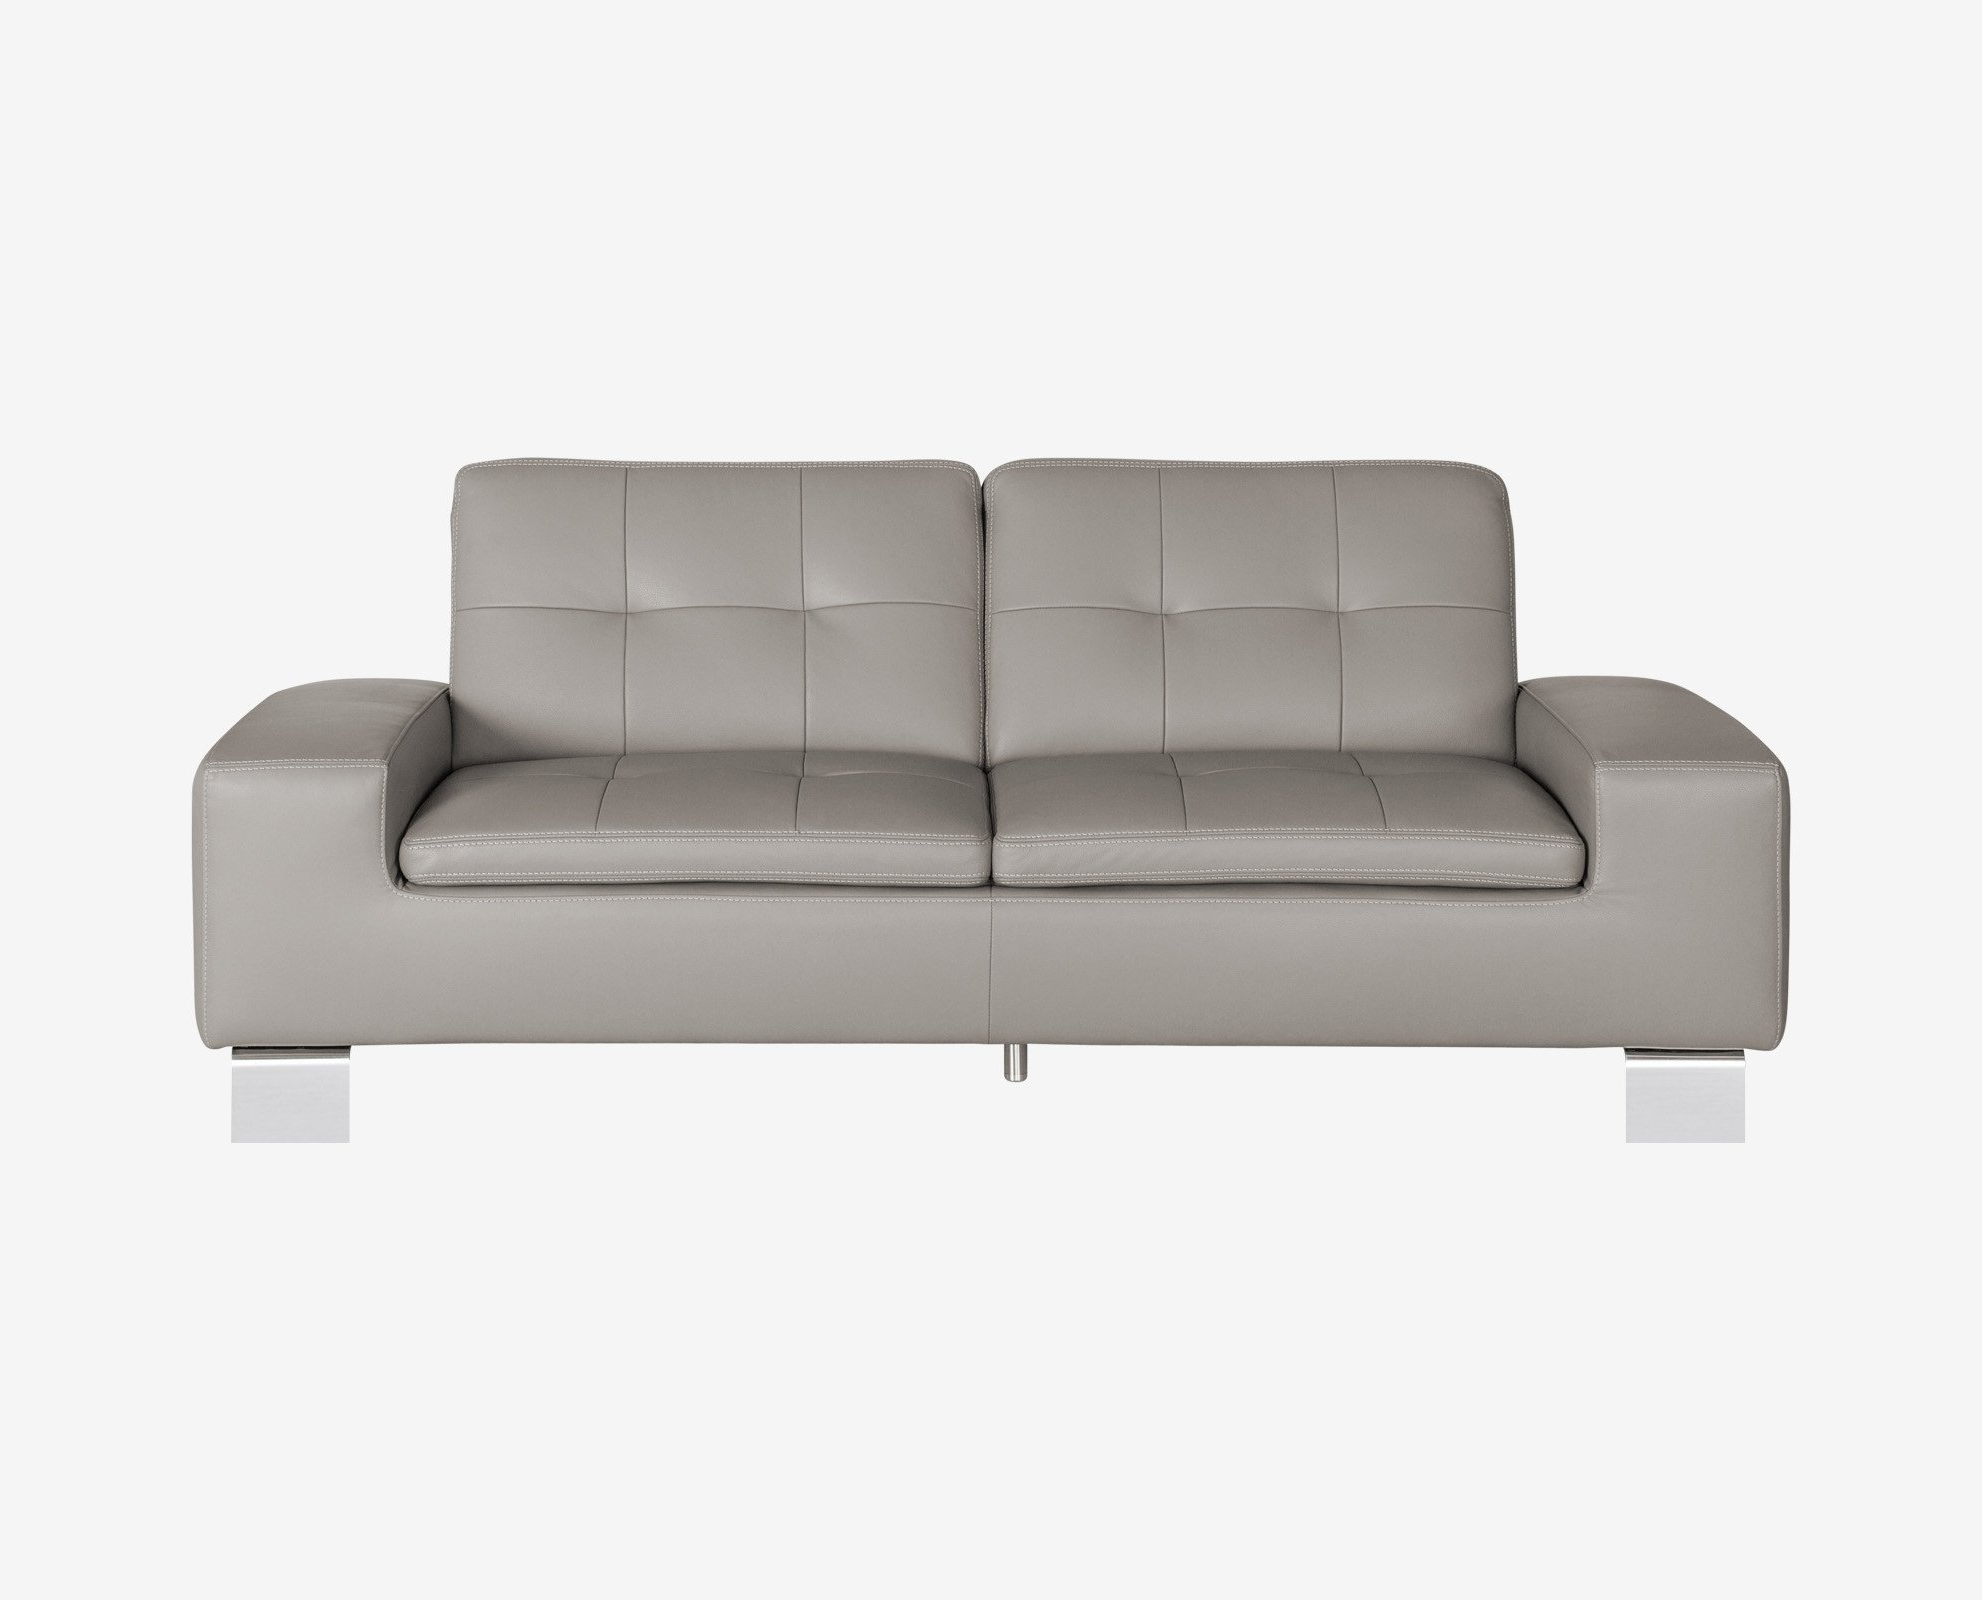 Recent Modern Grey Leather Sofa Sam Levitz Furniture For Gray Decorations Within Sam Levitz Sectional Sofas (View 14 of 20)